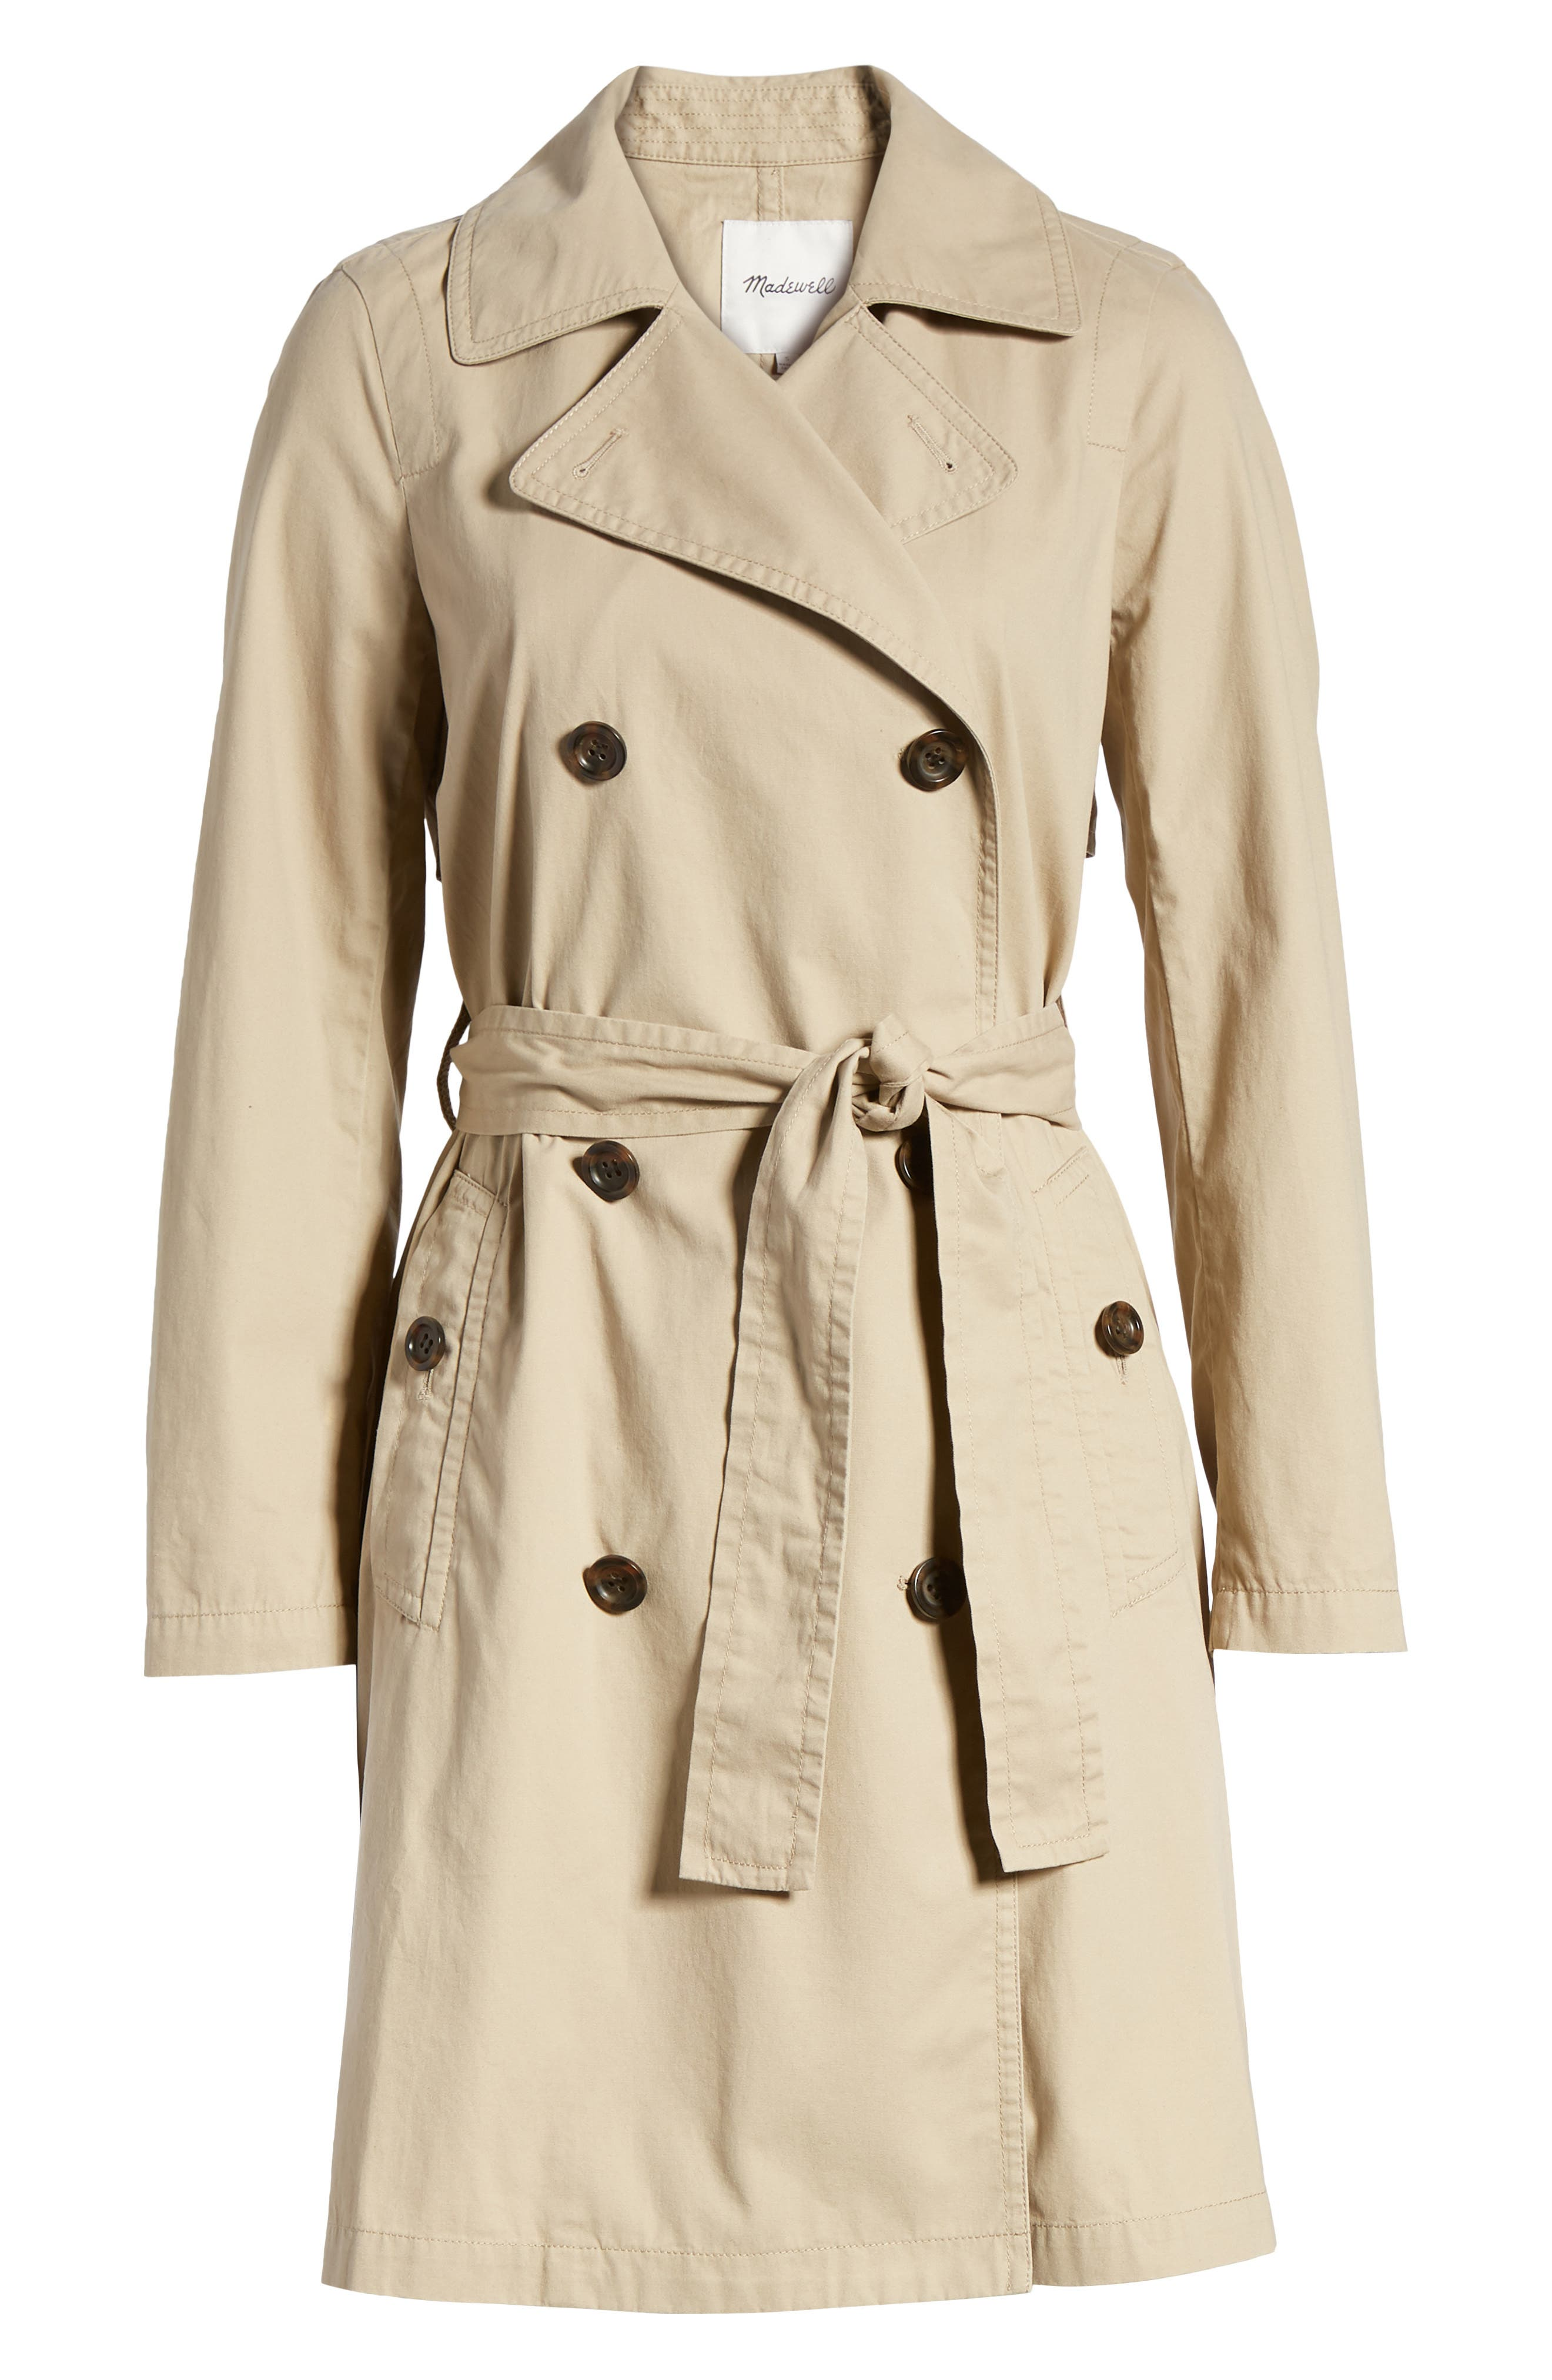 MADEWELL,                             Abroad Trench Coat,                             Alternate thumbnail 6, color,                             250